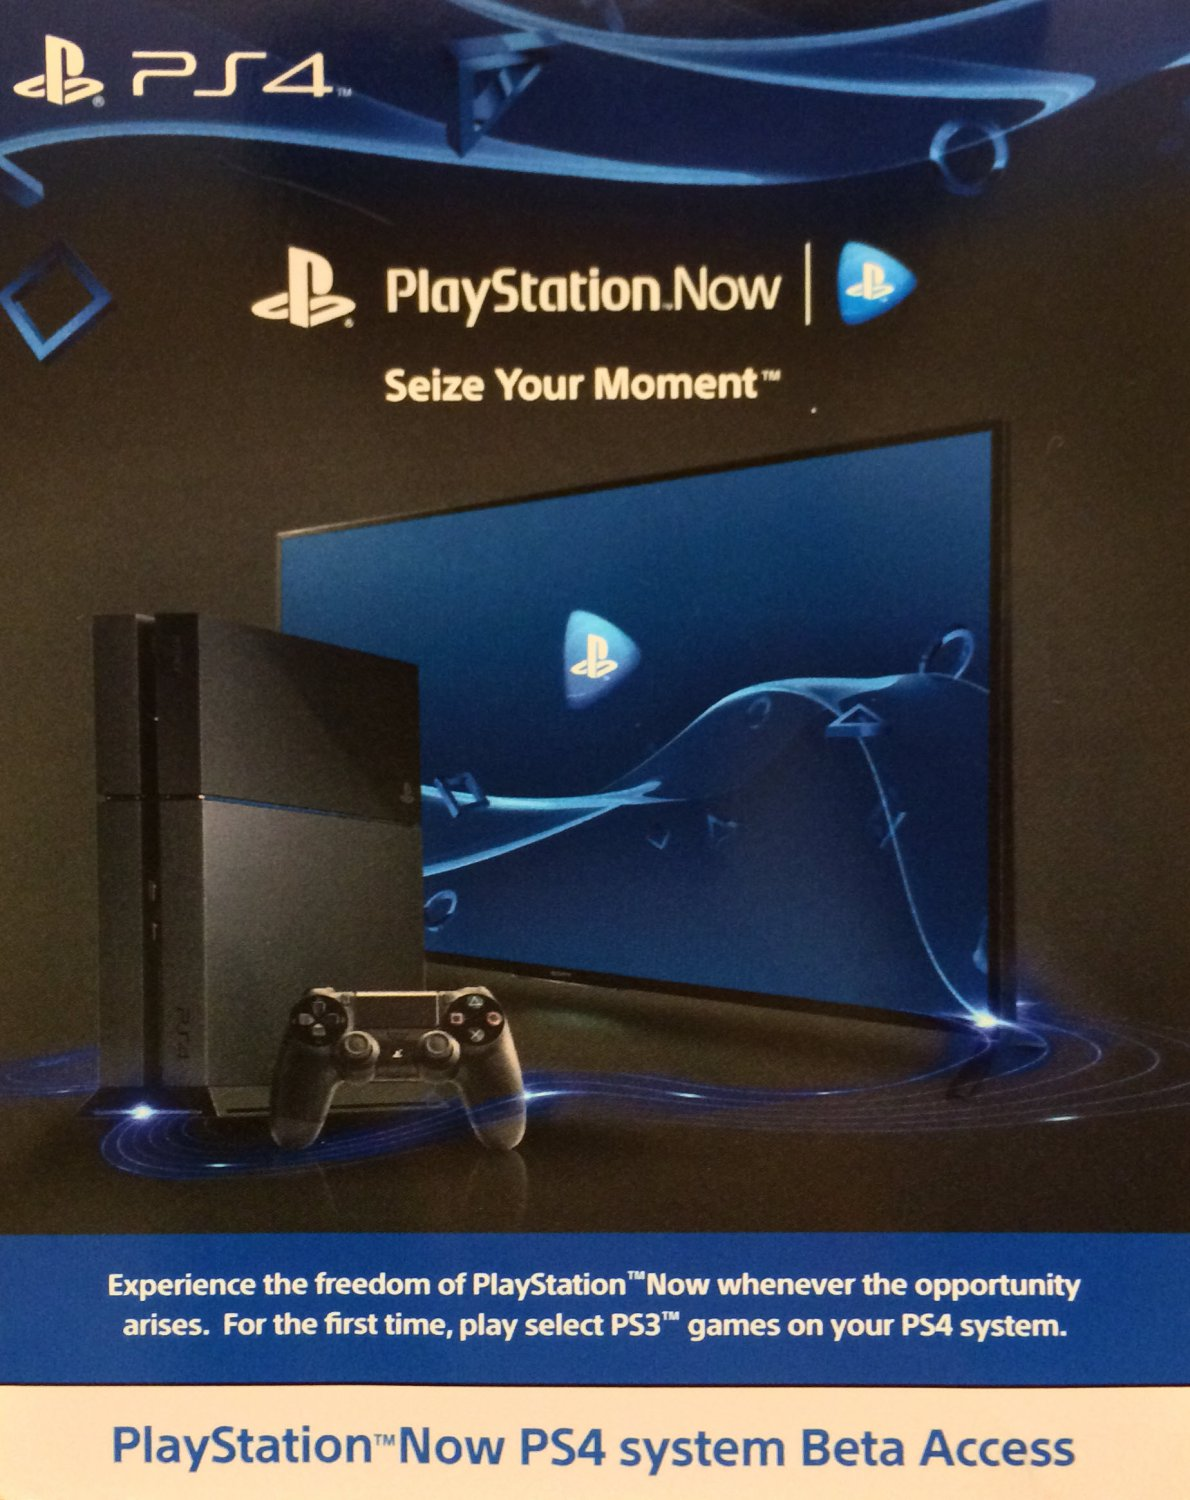 E3 2014 PlayStation Now PS4 system Beta Acccess Unlock Code